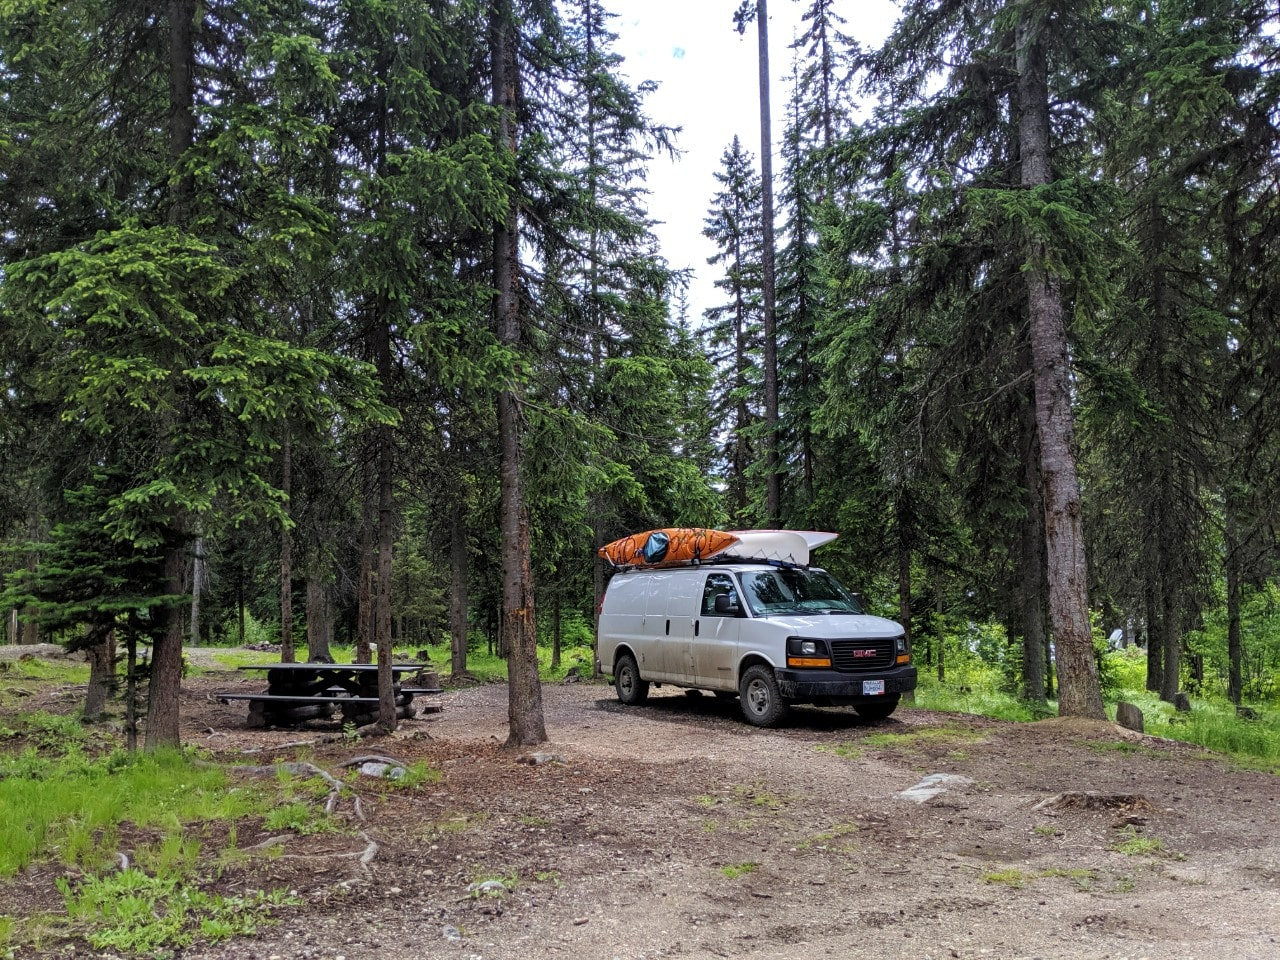 White van parked next to picnic table at free camping site in British Columbia